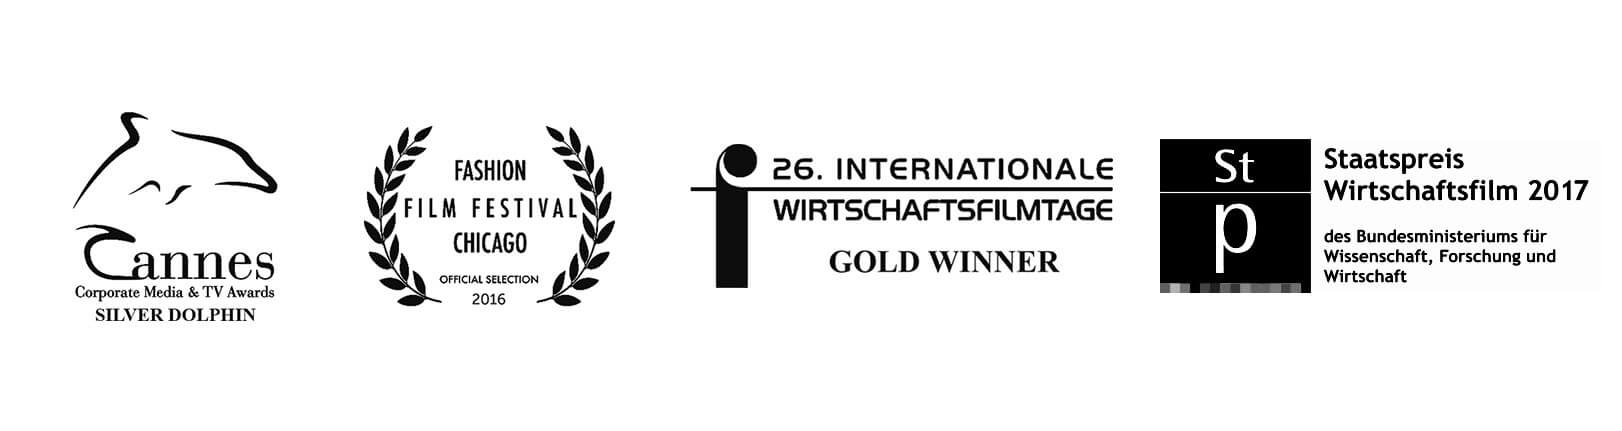 mindconsole schullin award win cannes corporate silver dolphin fashion film festival chicago internationale wirtschaftsfilmtage gold staatspreis wirtschaftsfilm 2017